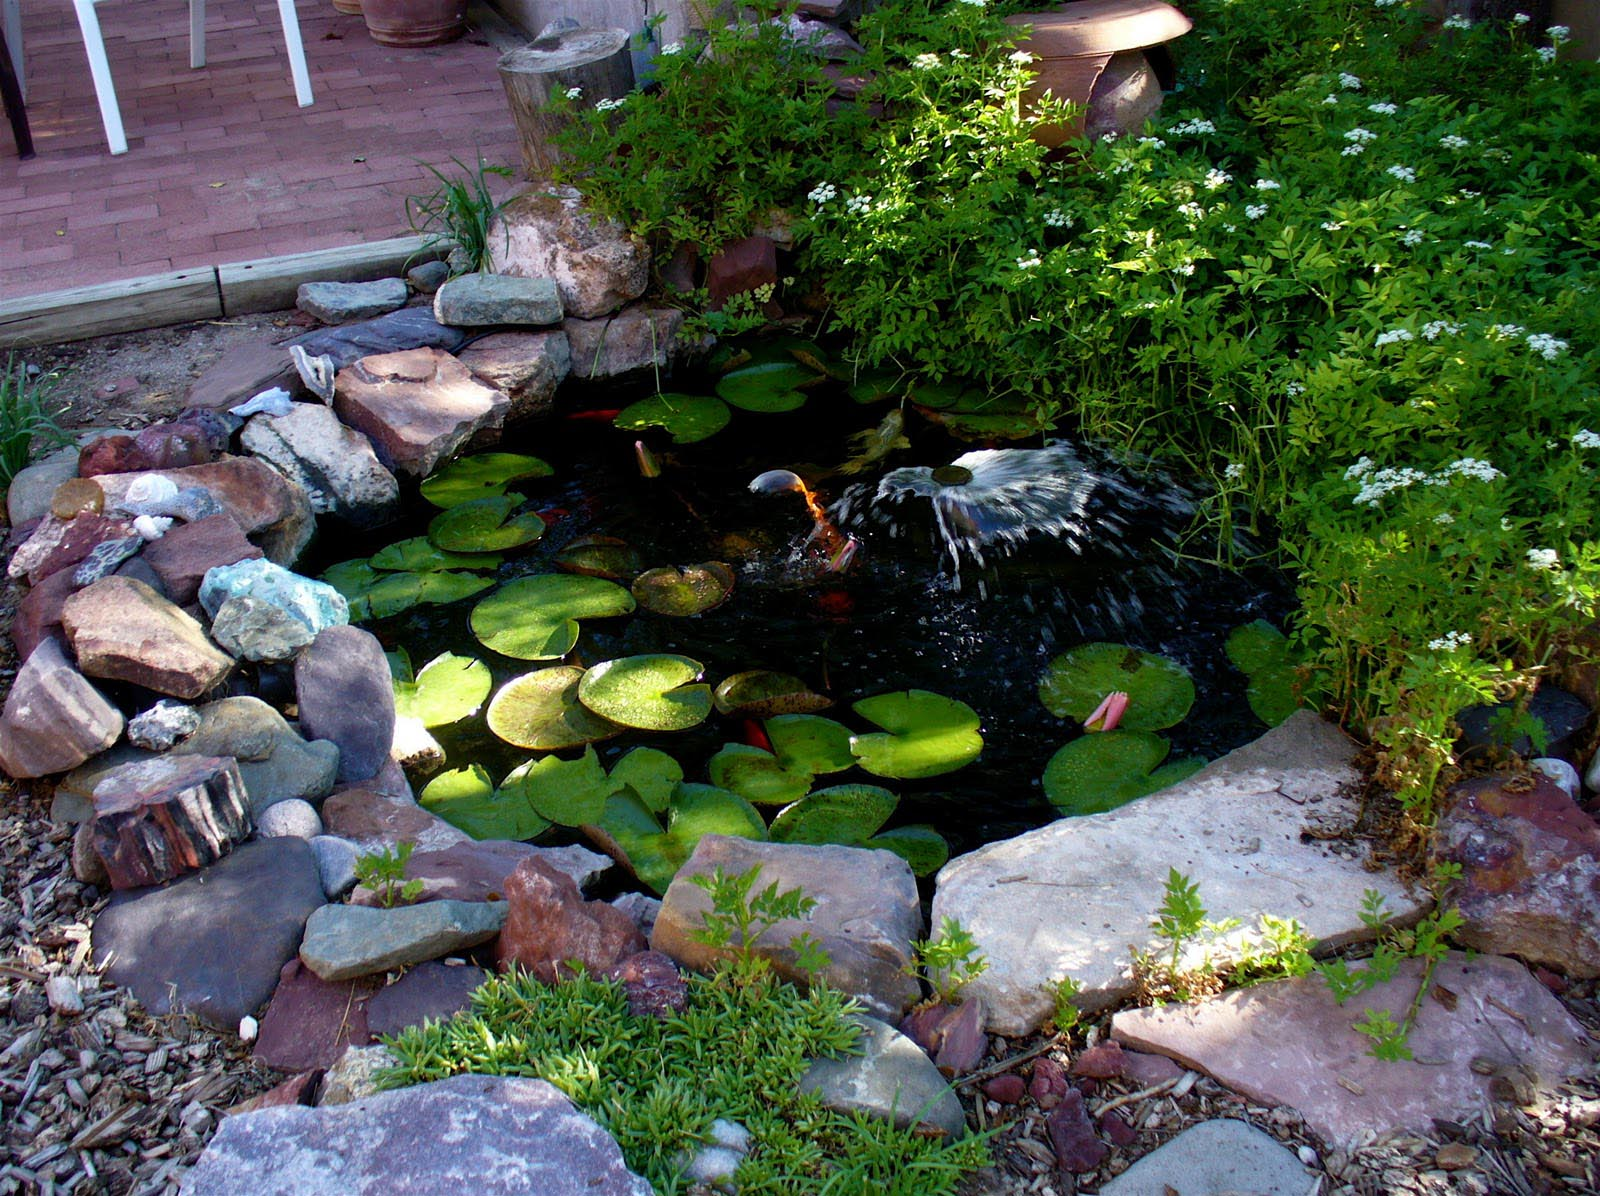 Garden fish pond ideas backyard design ideas for Making a pond in your backyard